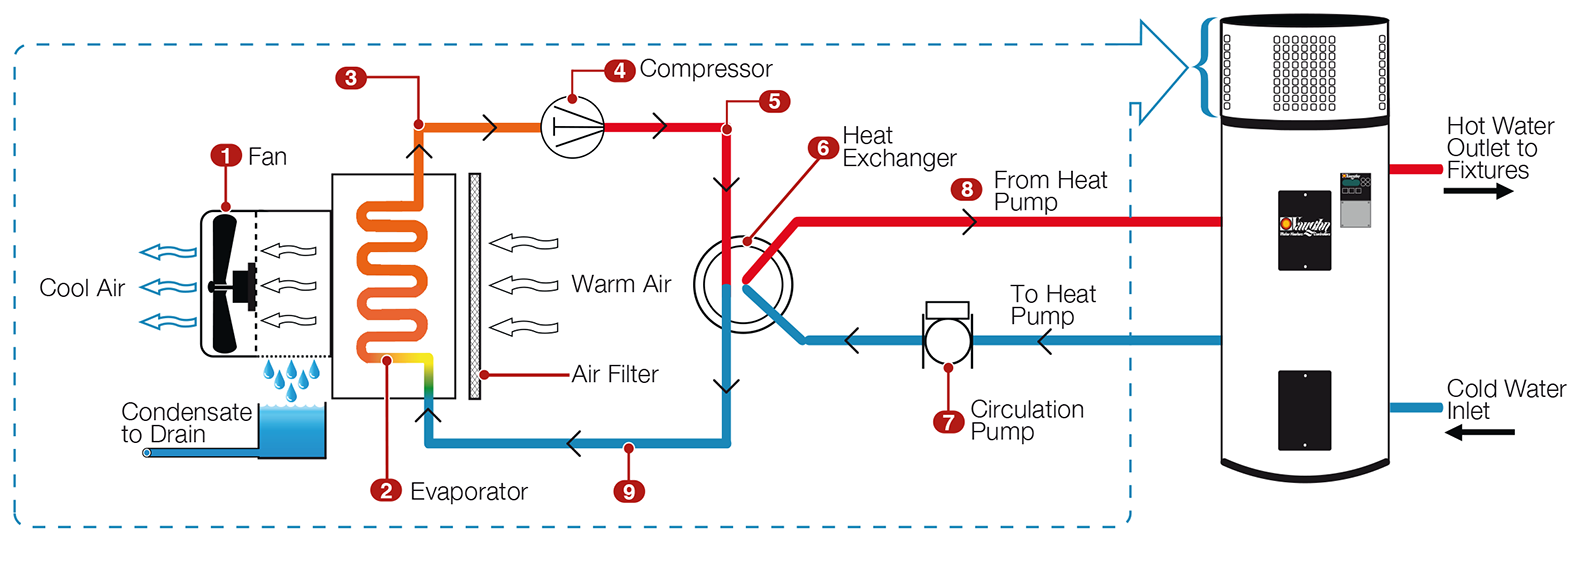 High Efficiency Electric Water Heater Vaughn Wiring Diagram Cold Room Heat Pump Operational